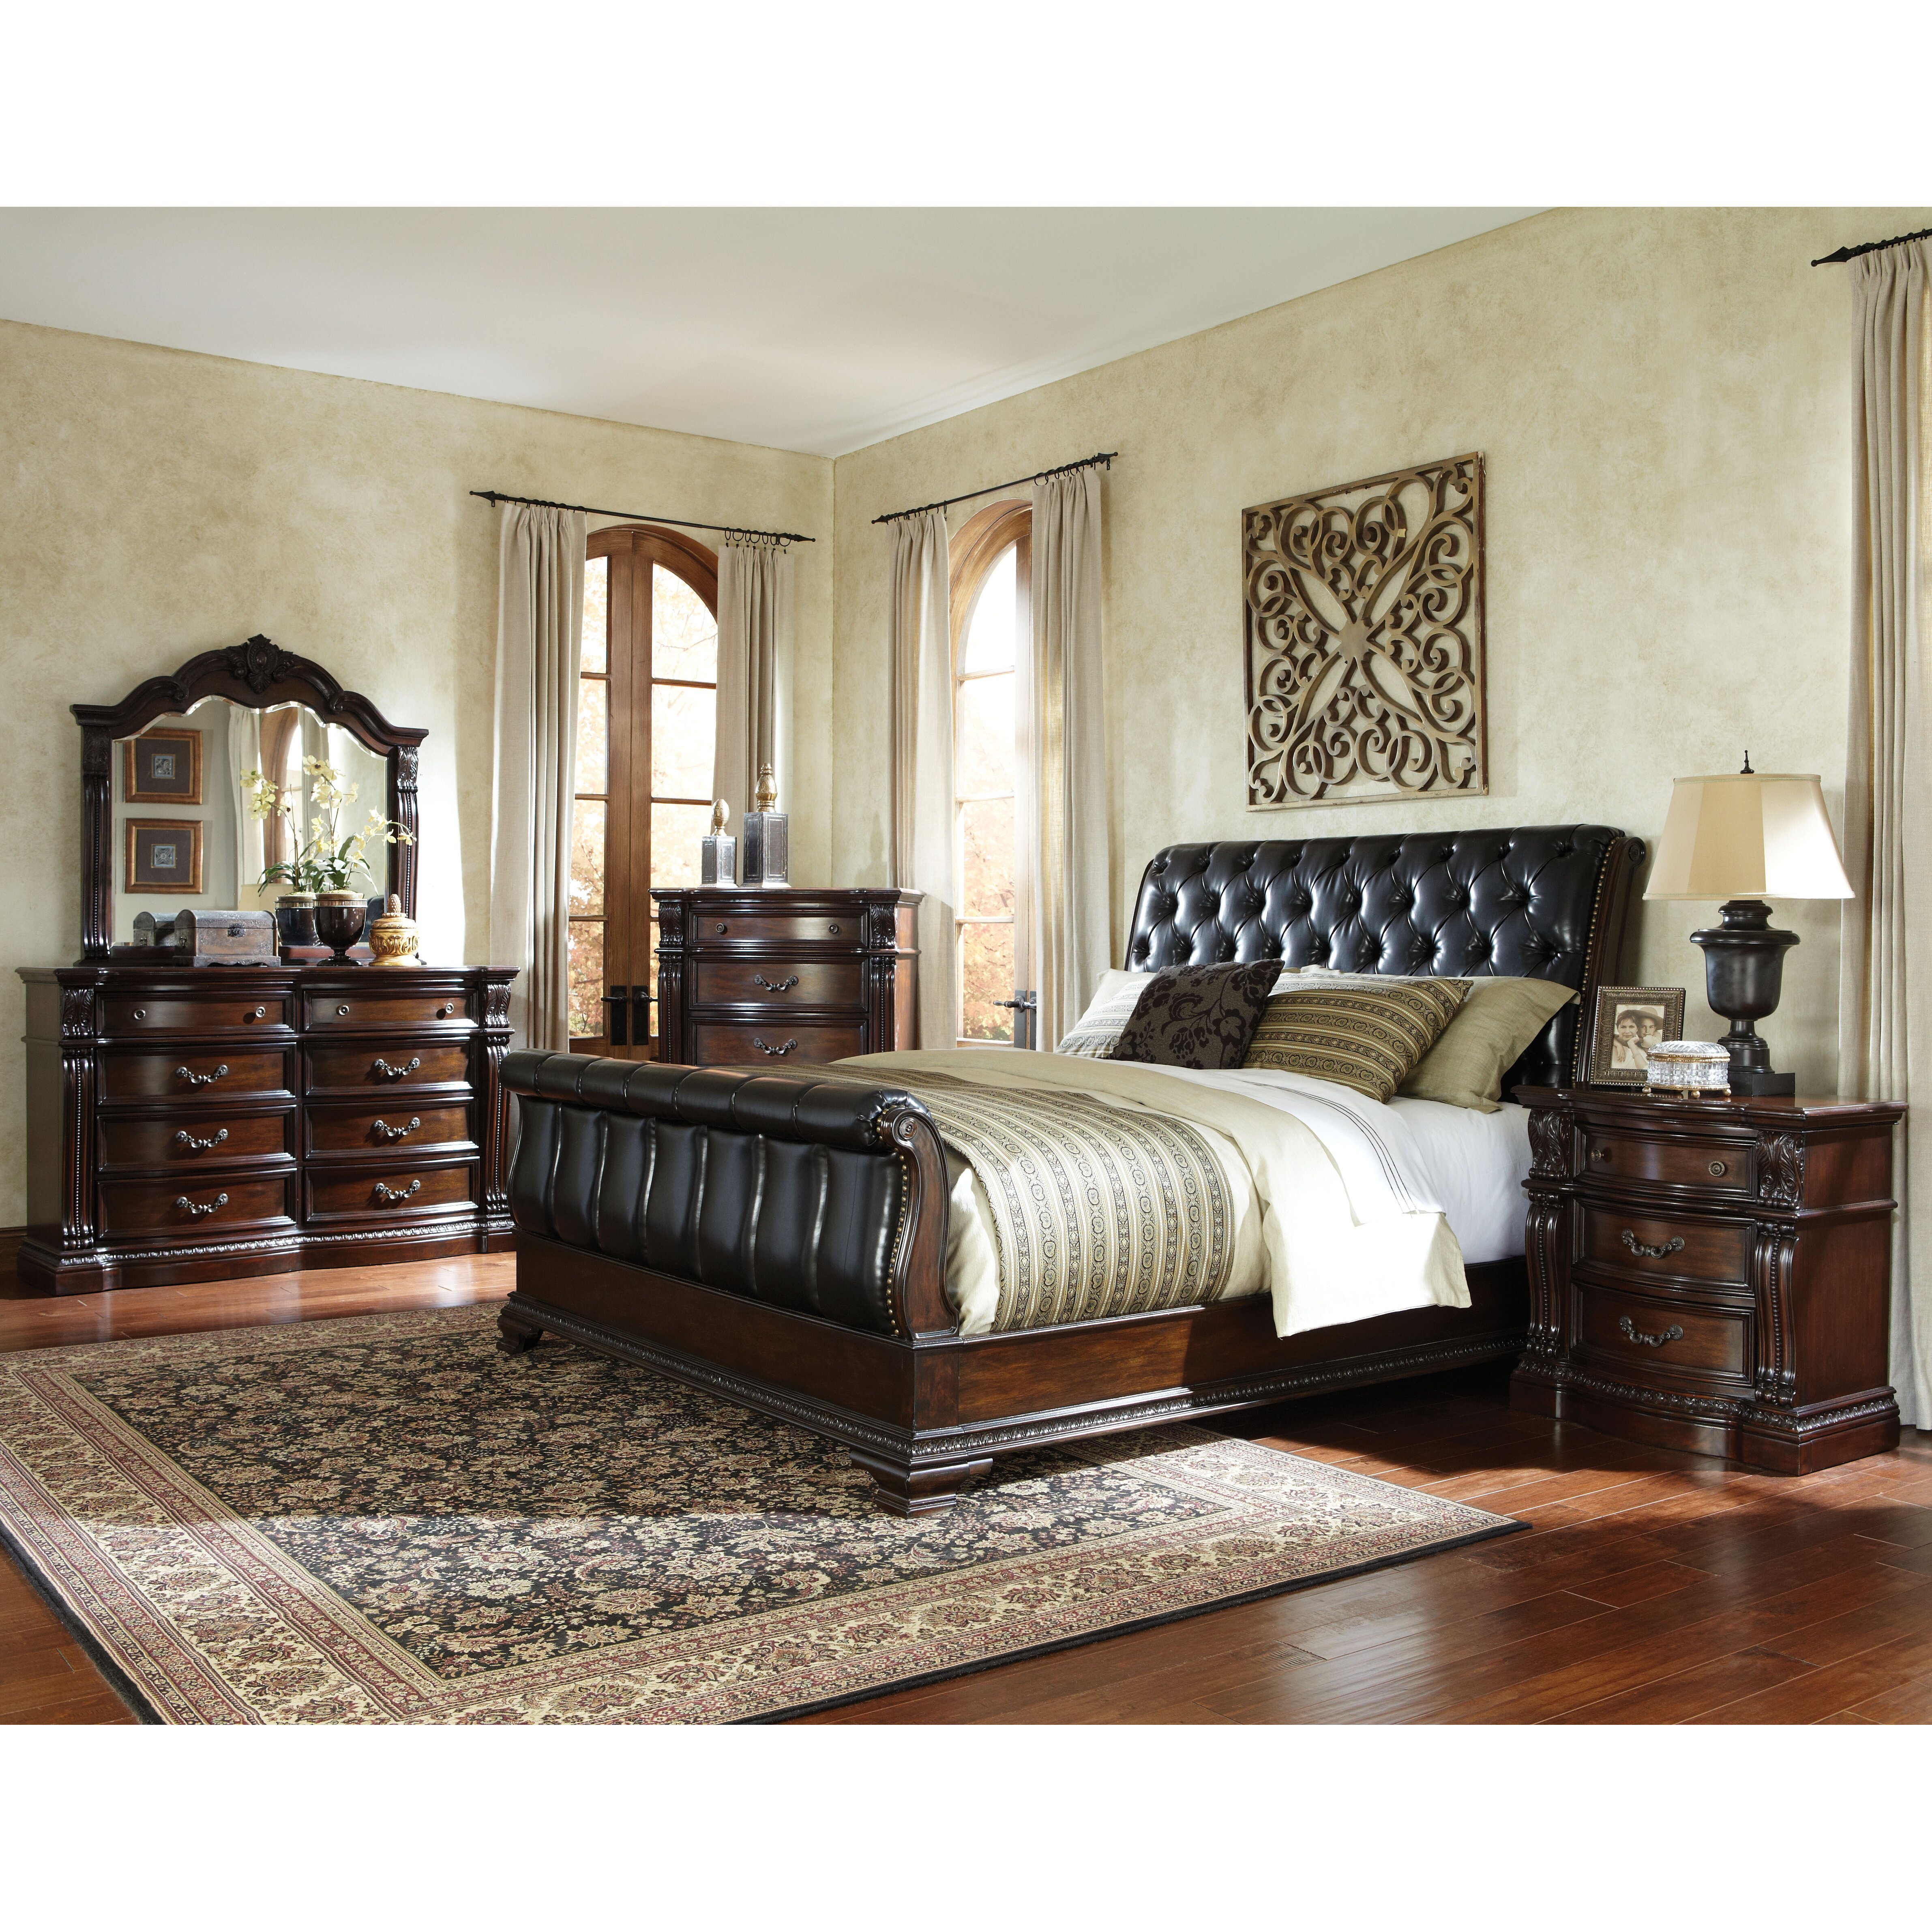 Standard Furniture Churchill Upholstered Sleigh Bed